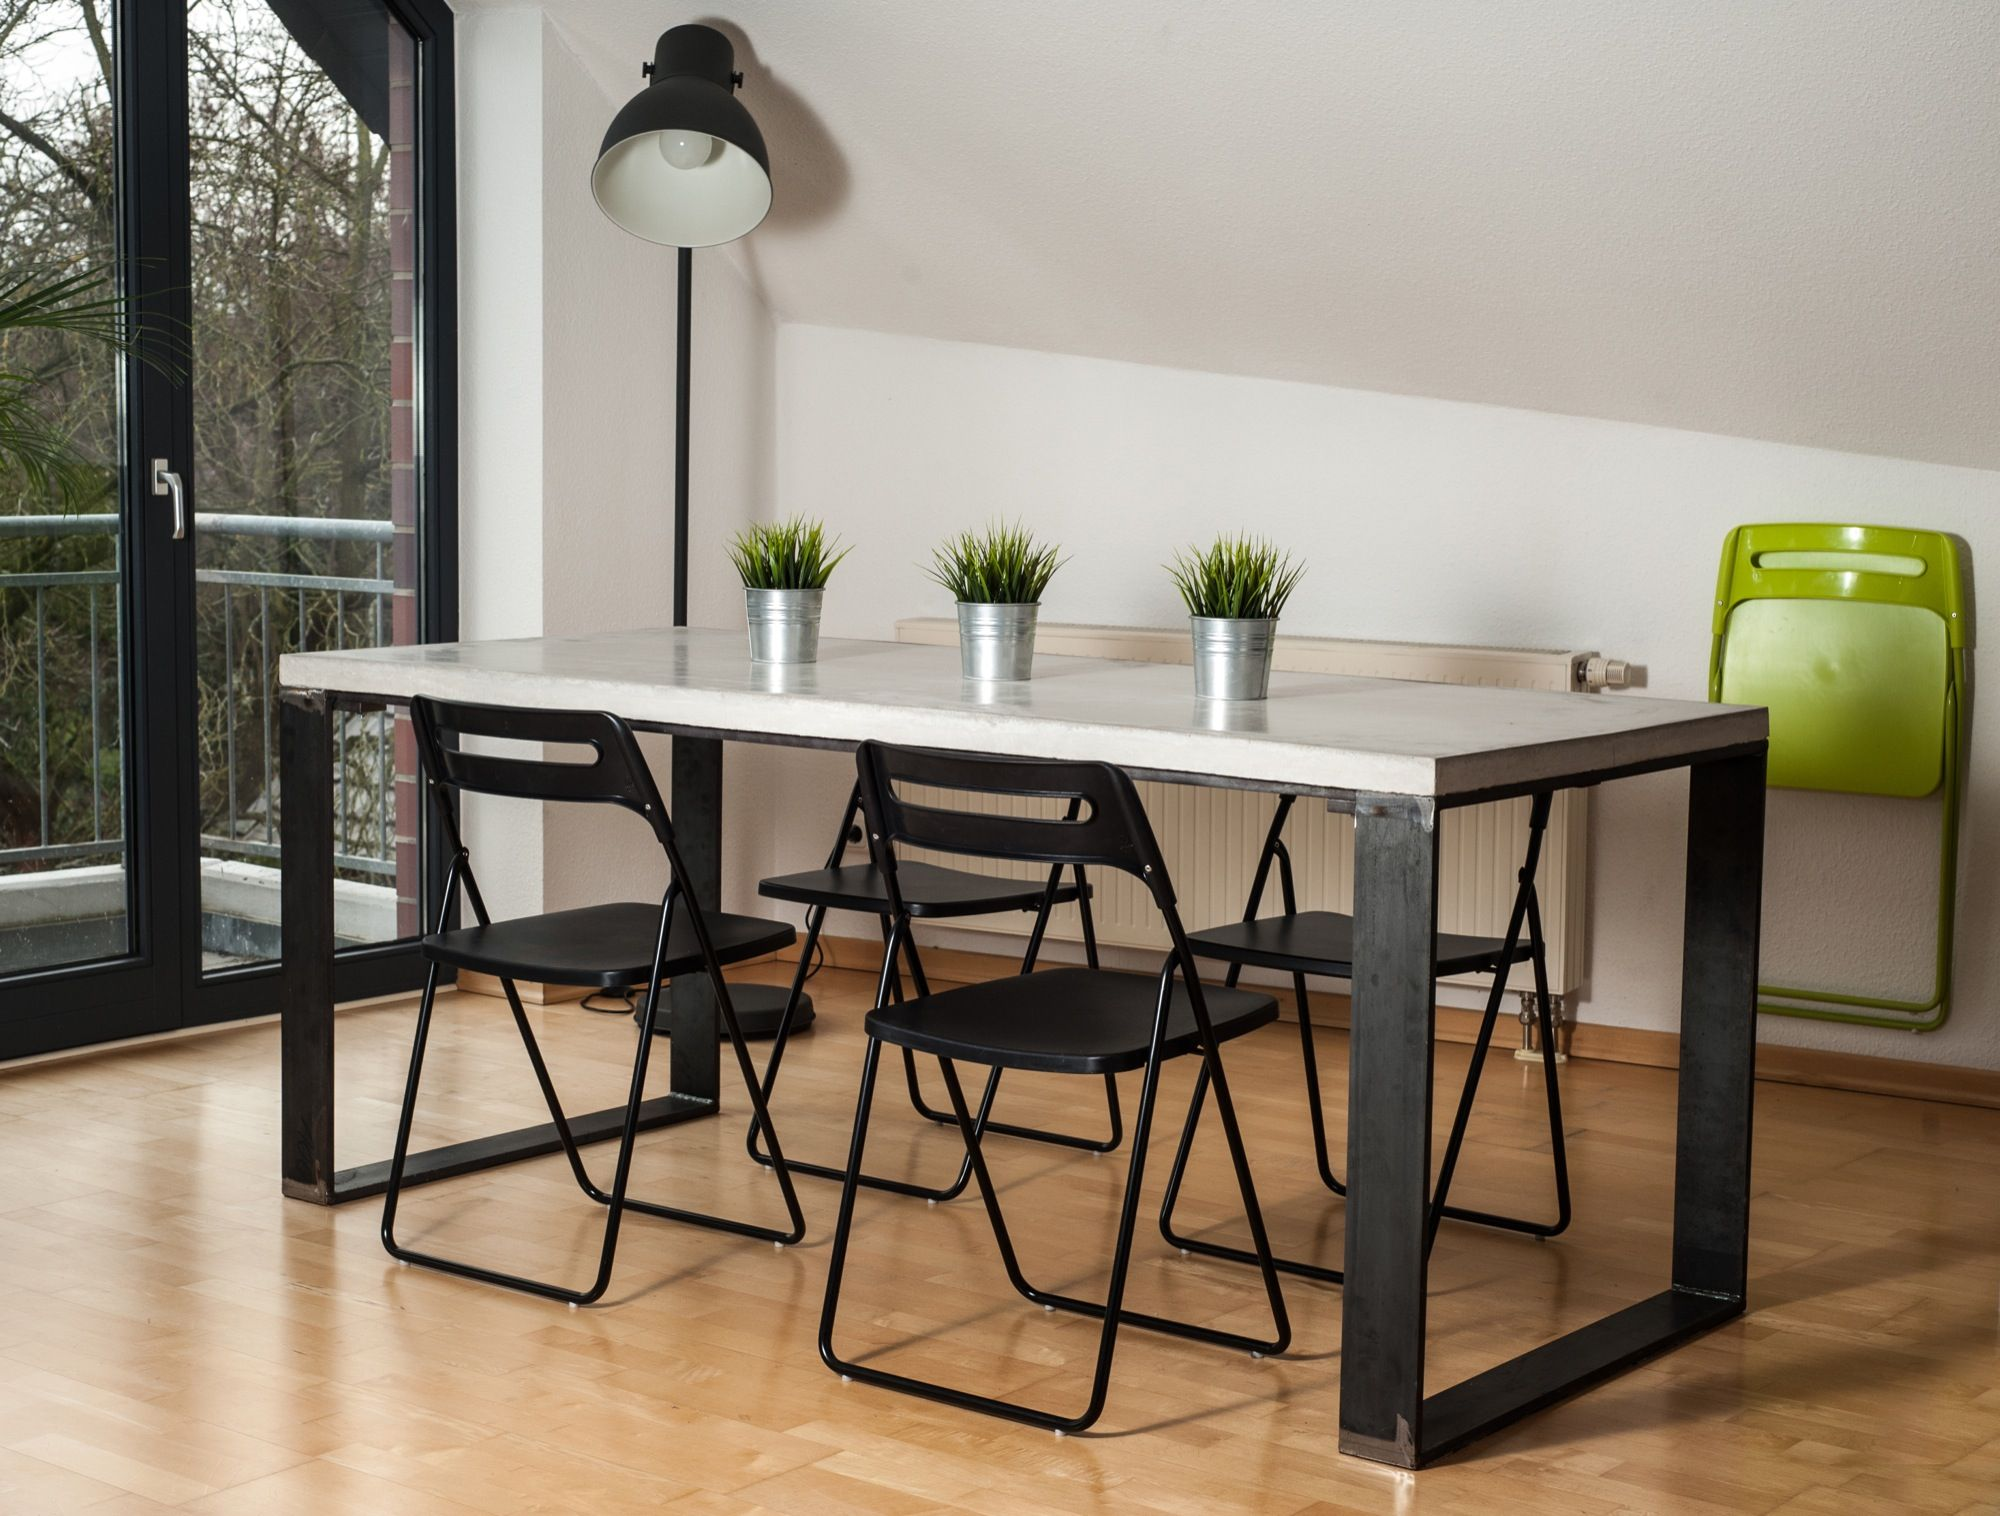 eat is our concrete dining table with